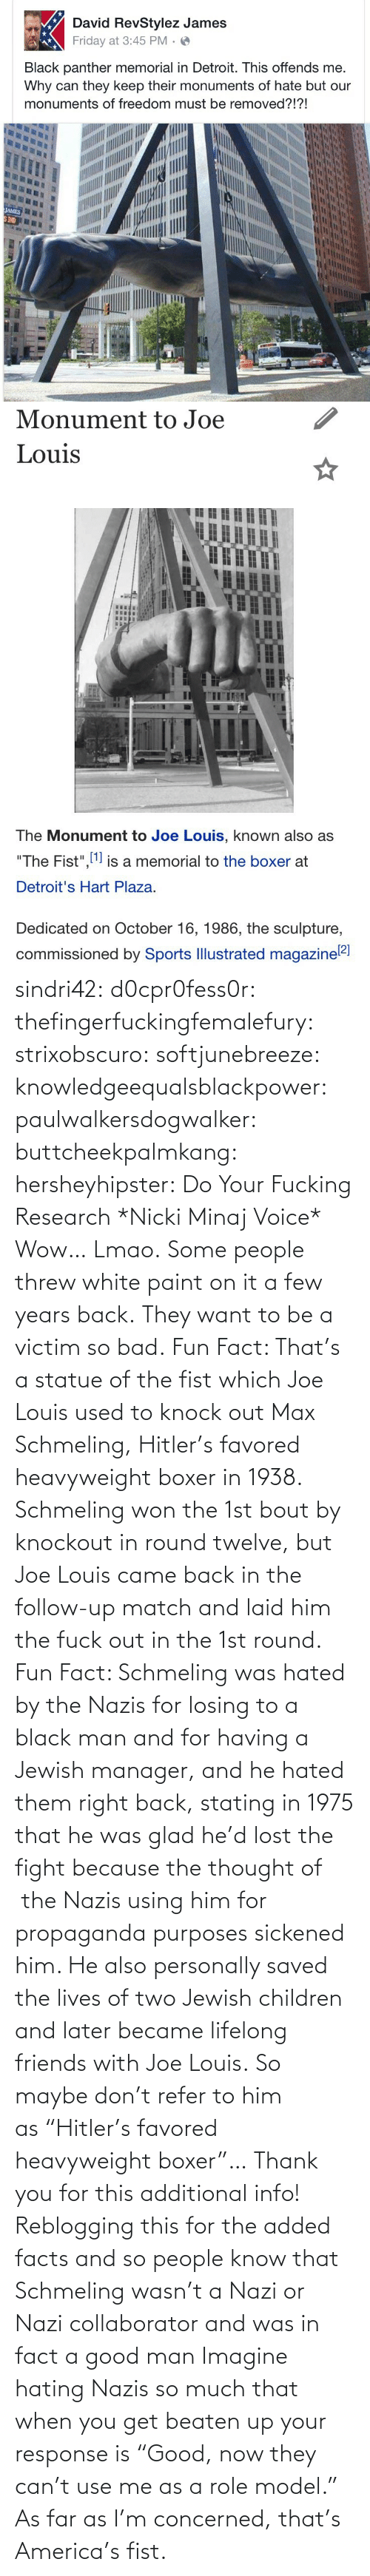 "Paint: sindri42:  d0cpr0fess0r:  thefingerfuckingfemalefury:  strixobscuro:  softjunebreeze:  knowledgeequalsblackpower:  paulwalkersdogwalker:   buttcheekpalmkang:   hersheyhipster:  Do Your Fucking Research *Nicki Minaj Voice*    Wow… Lmao.   Some people threw white paint on it a few years back.   They want to be a victim so bad.  Fun Fact: That's a statue of the fist which Joe Louis used to knock out Max Schmeling, Hitler's favored heavyweight boxer in 1938. Schmeling won the 1st bout by knockout in round twelve, but Joe Louis came back in the follow-up match and laid him the fuck out in the 1st round.  Fun Fact: Schmeling was hated by the Nazis for losing to a black man and for having a Jewish manager, and he hated them right back, stating in 1975 that he was glad he'd lost the fight because the thought of  the Nazis using him for propaganda purposes sickened him. He also personally saved the lives of two Jewish children and later became lifelong friends with Joe Louis. So maybe don't refer to him as ""Hitler's favored heavyweight boxer""…  Thank you for this additional info! Reblogging this for the added facts and so people know that Schmeling wasn't a Nazi or Nazi collaborator and was in fact a good man   Imagine hating Nazis so much that when you get beaten up your response is ""Good, now they can't use me as a role model.""  As far as I'm concerned, that's America's fist."